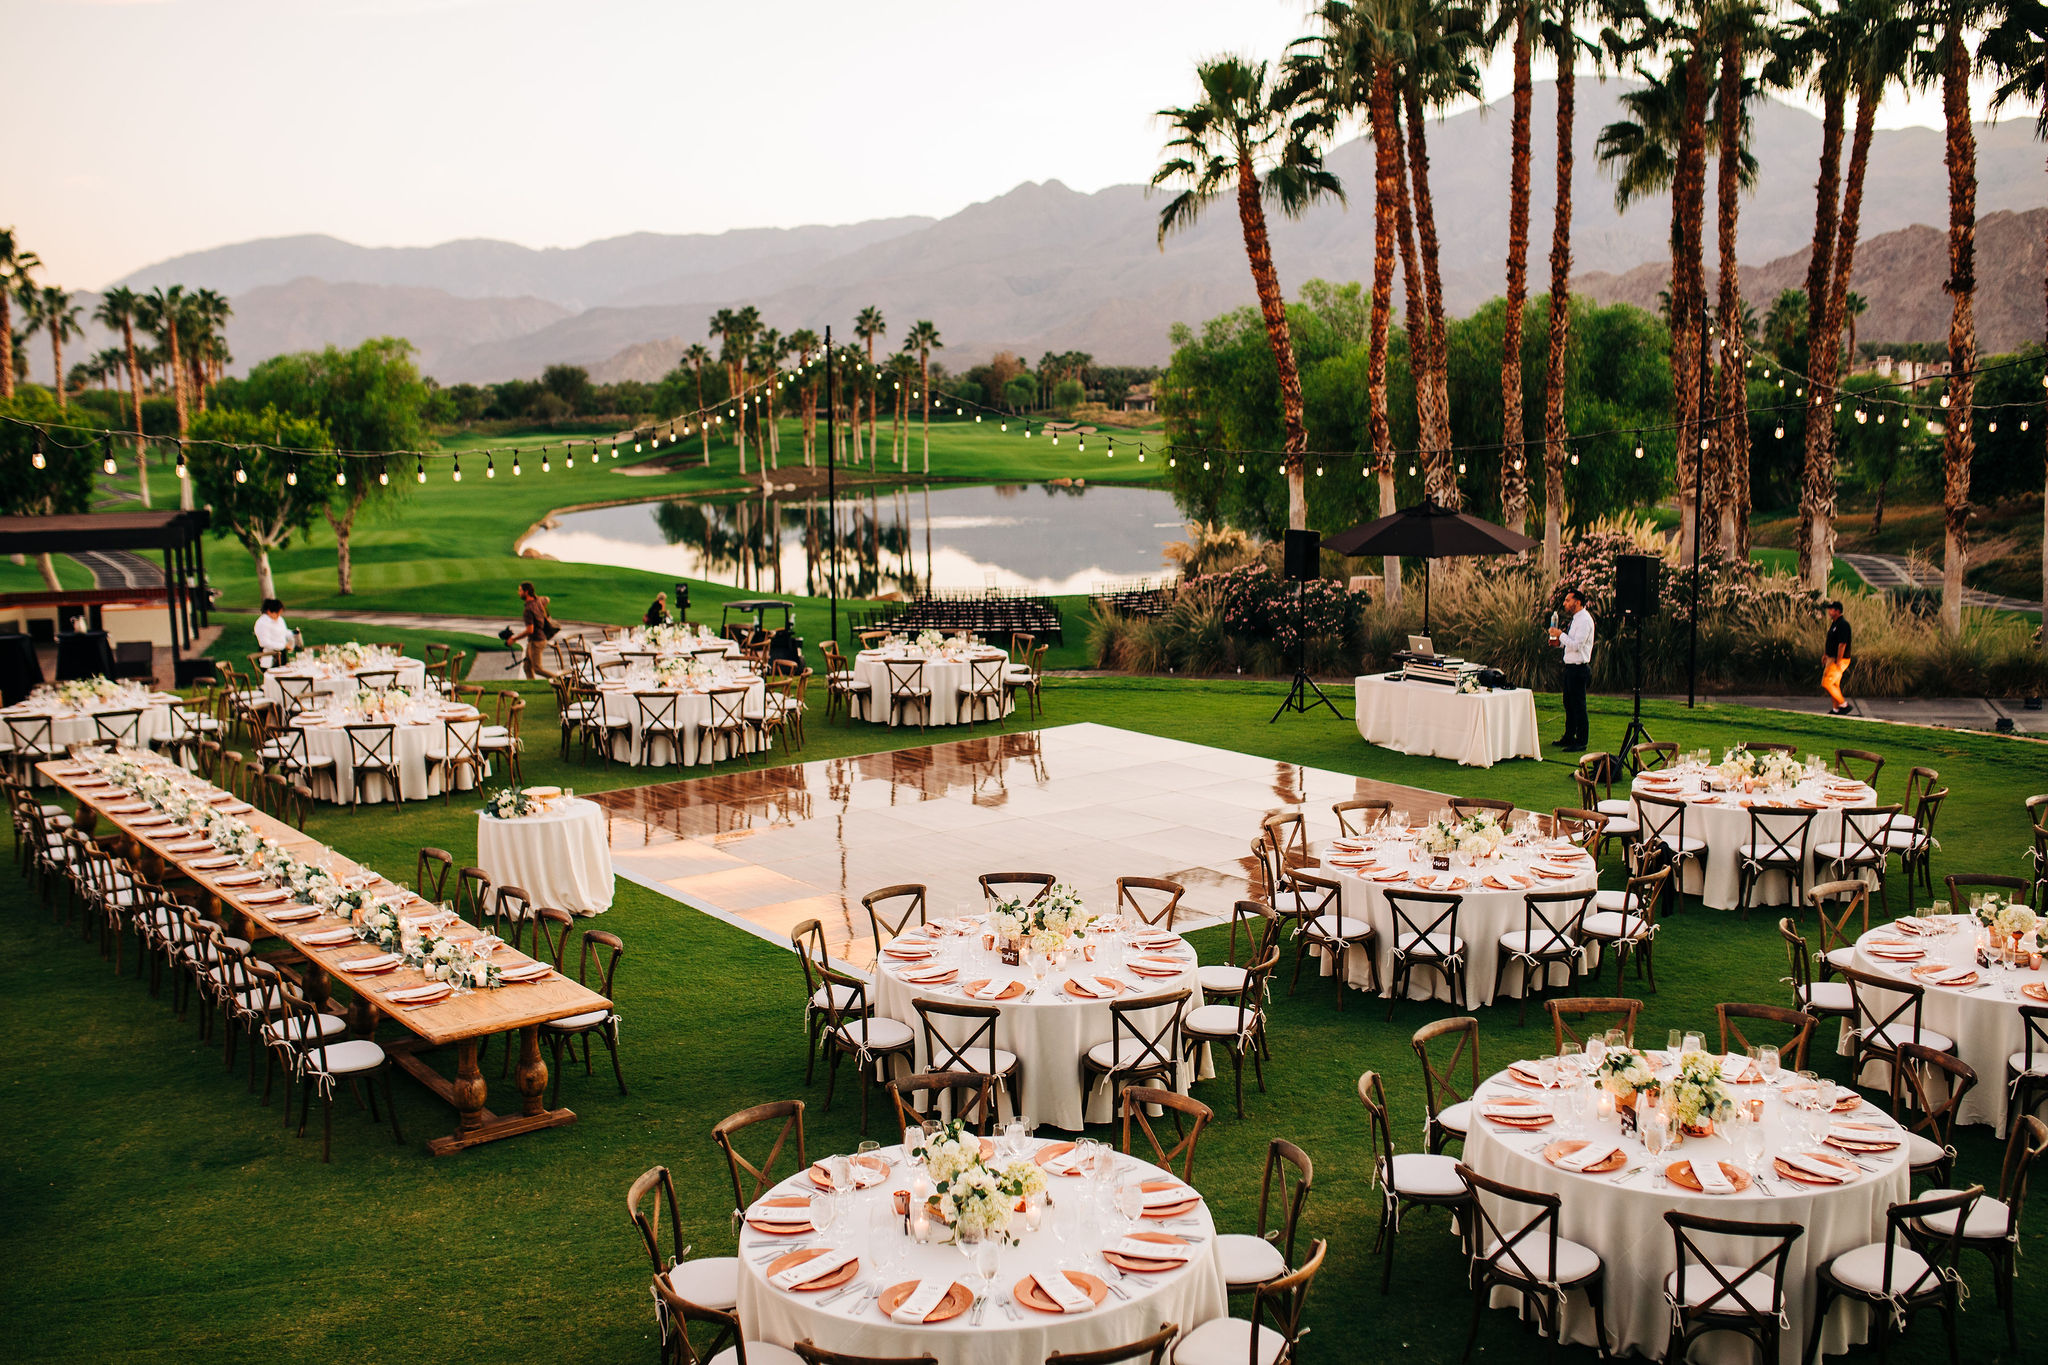 There are so many details to love about this Hideaway Golf Club Wedding.